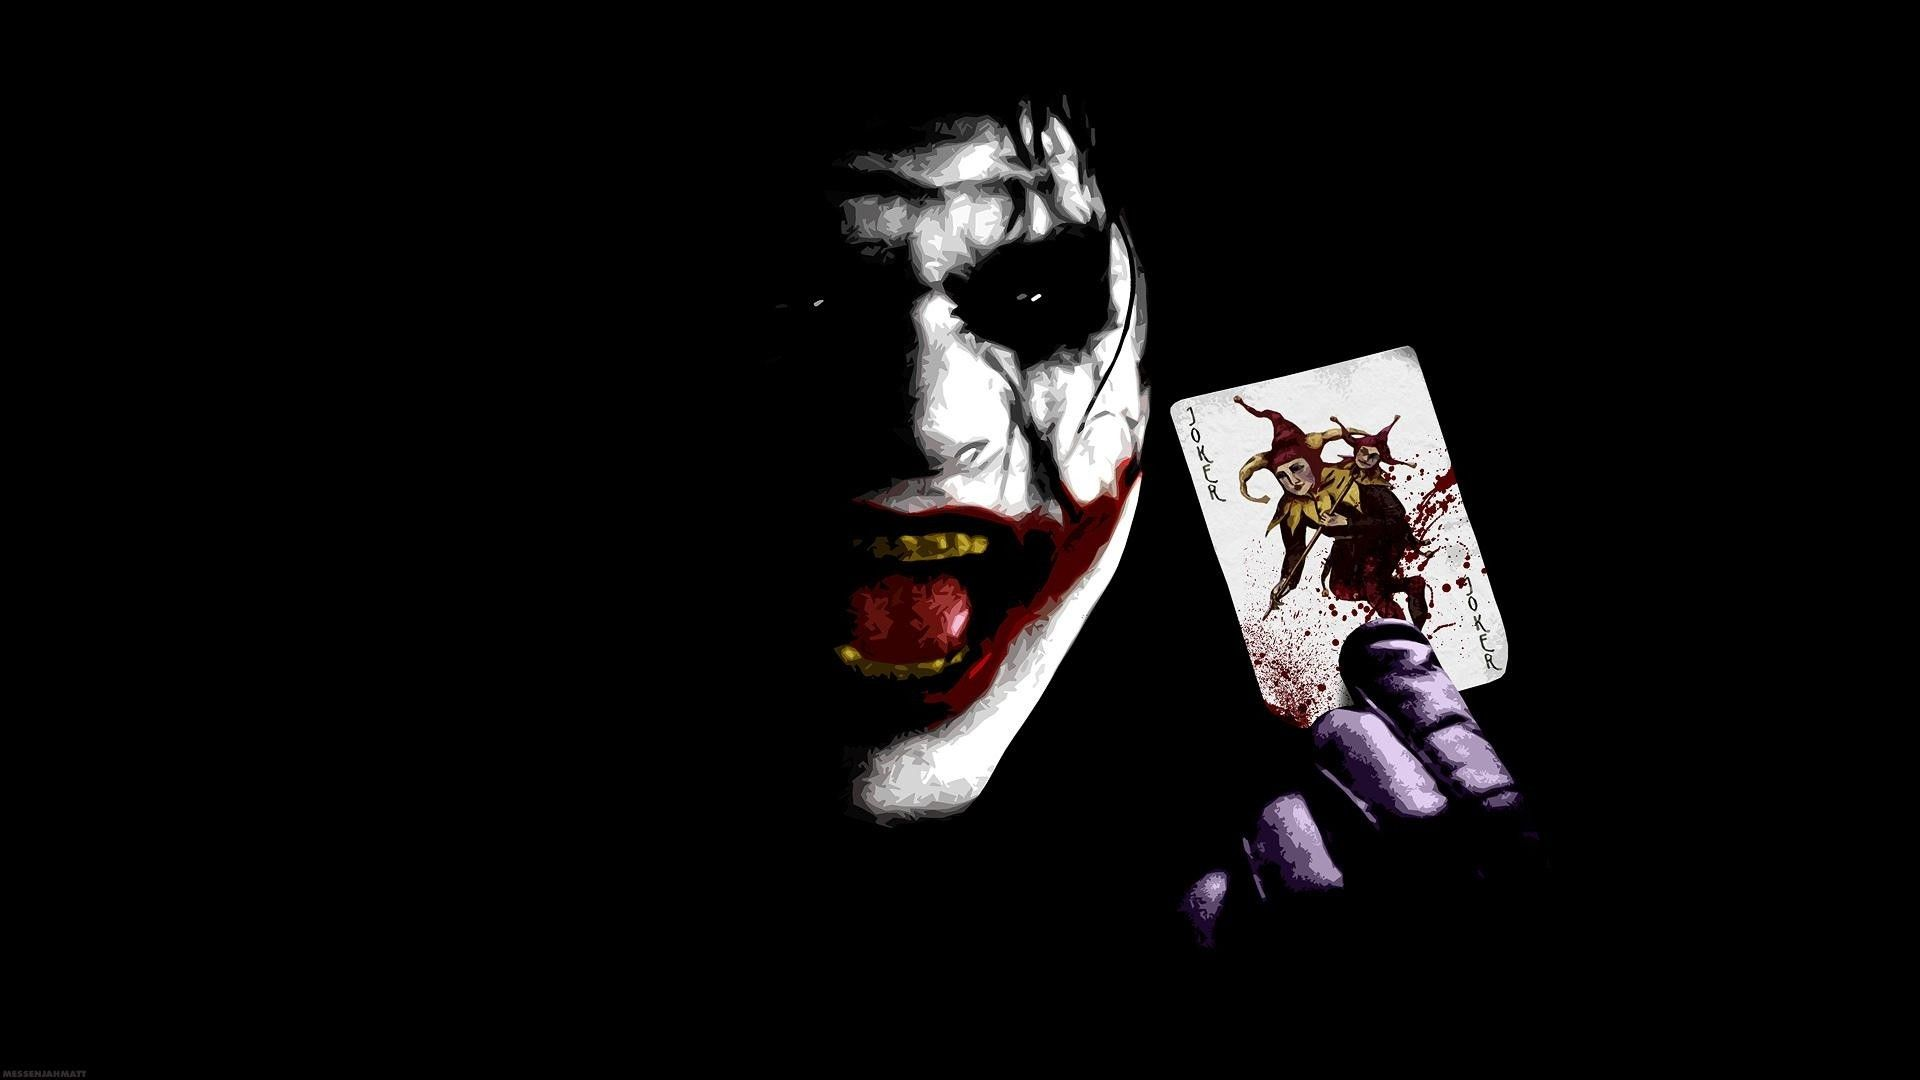 Pin by fontaxo dadang on wefox in 2019 joker wallpapers batman wallpaper joker - Joker brand wallpaper ...